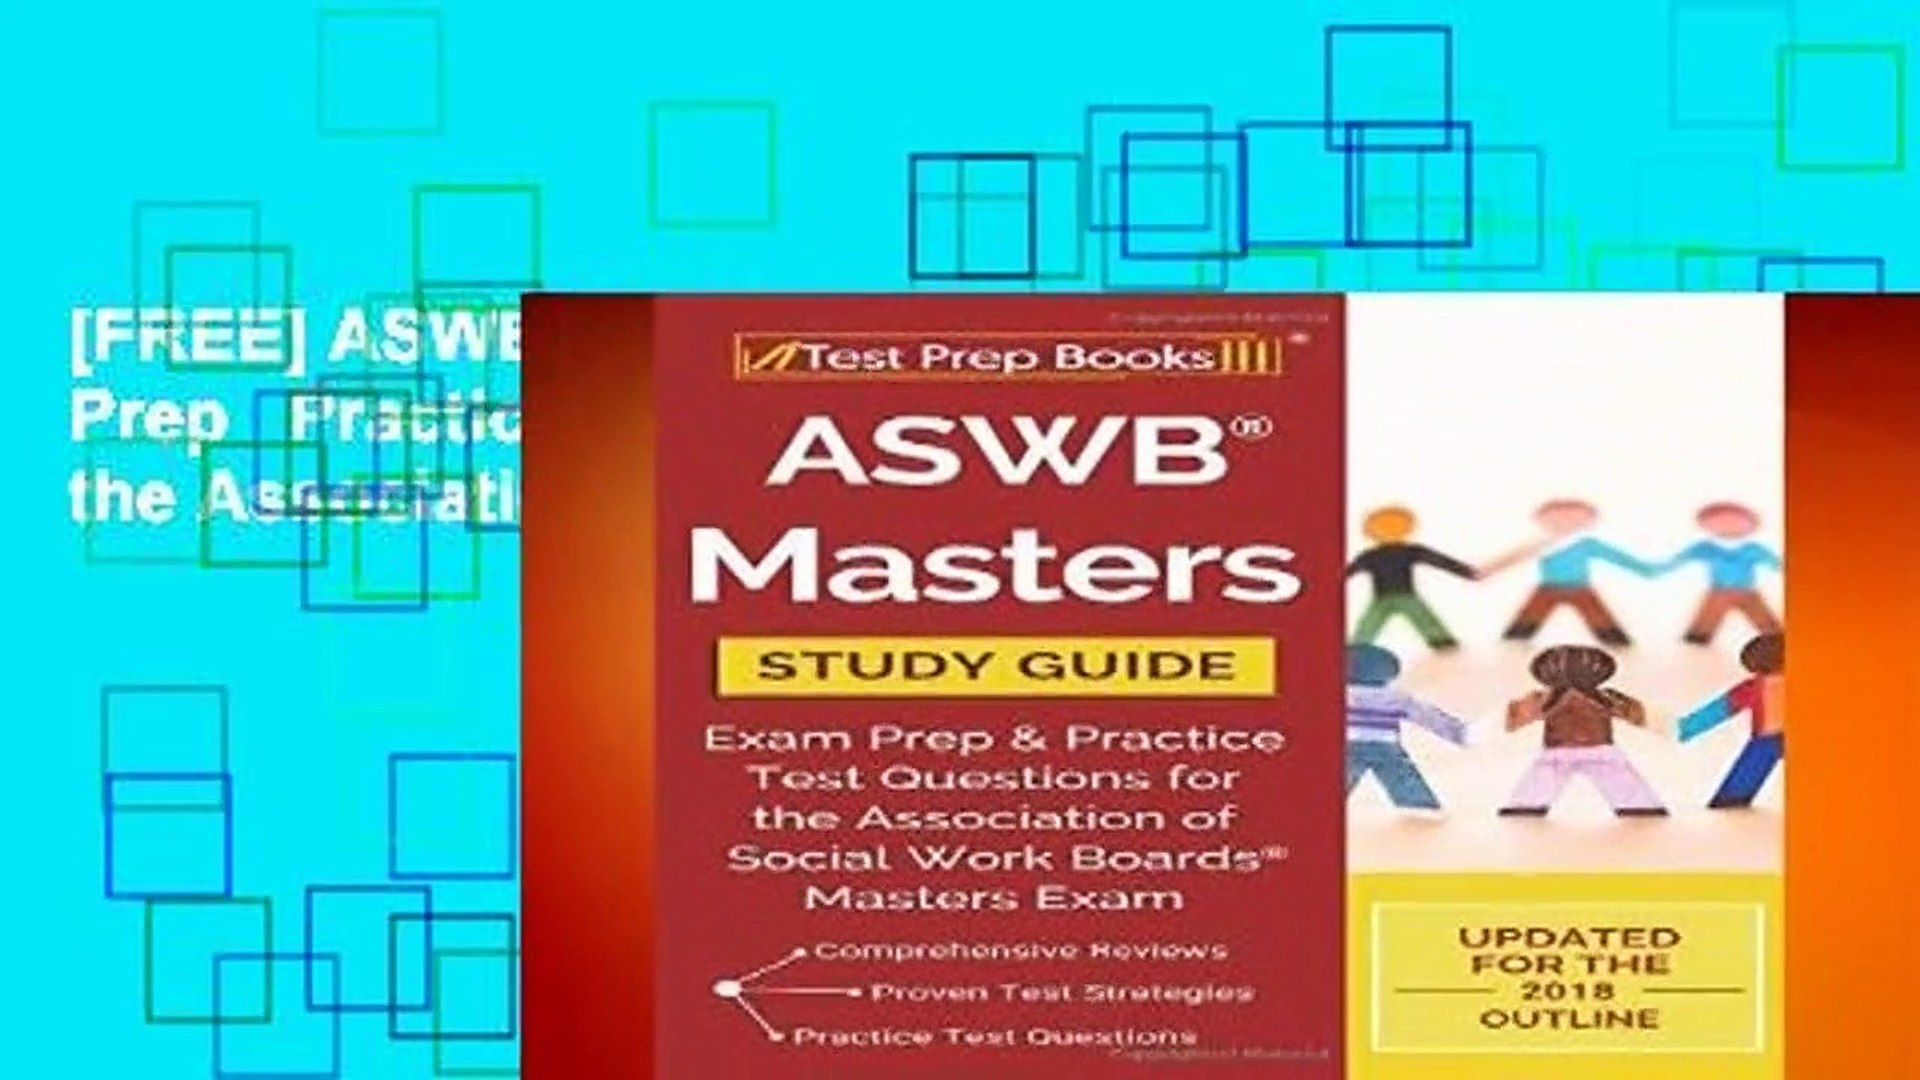 [FREE] ASWB Masters Study Guide: Exam Prep   Practice Test Questions for the Association of Social